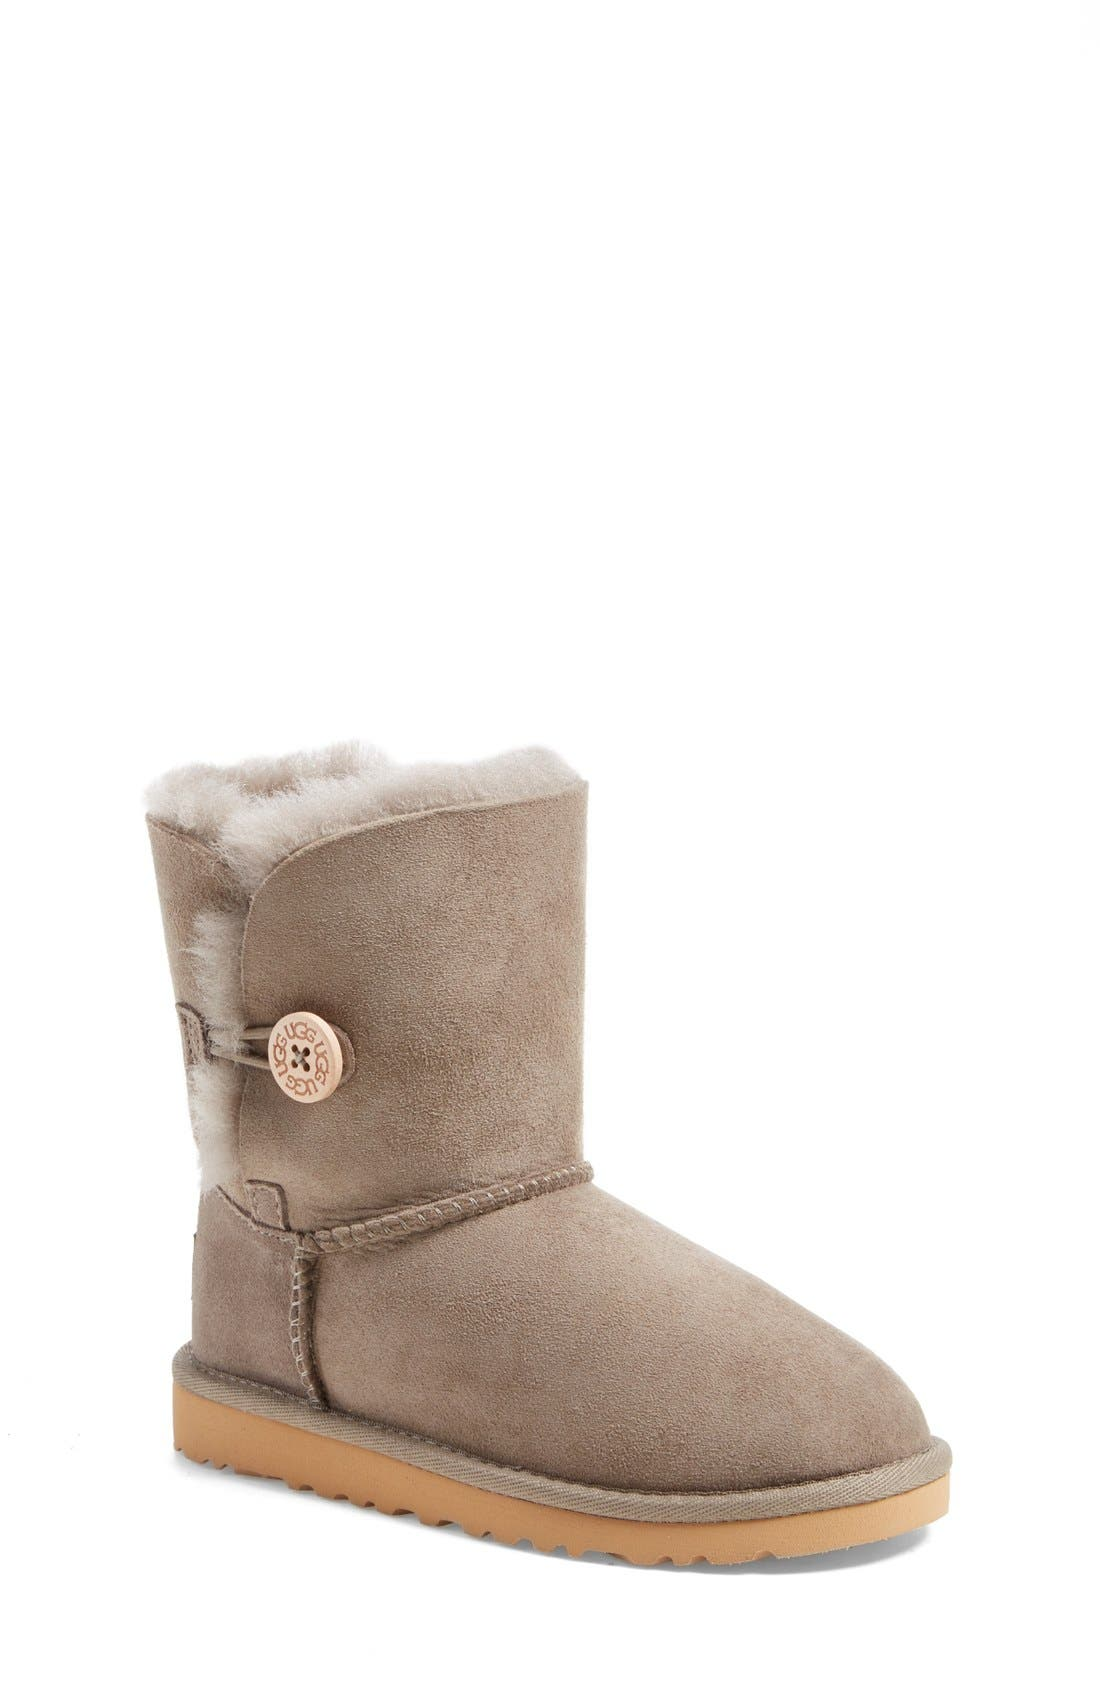 Alternate Image 1 Selected - UGG® 'Bailey Button' Boot (Walker, Toddler, Little Kid & Big Kid)